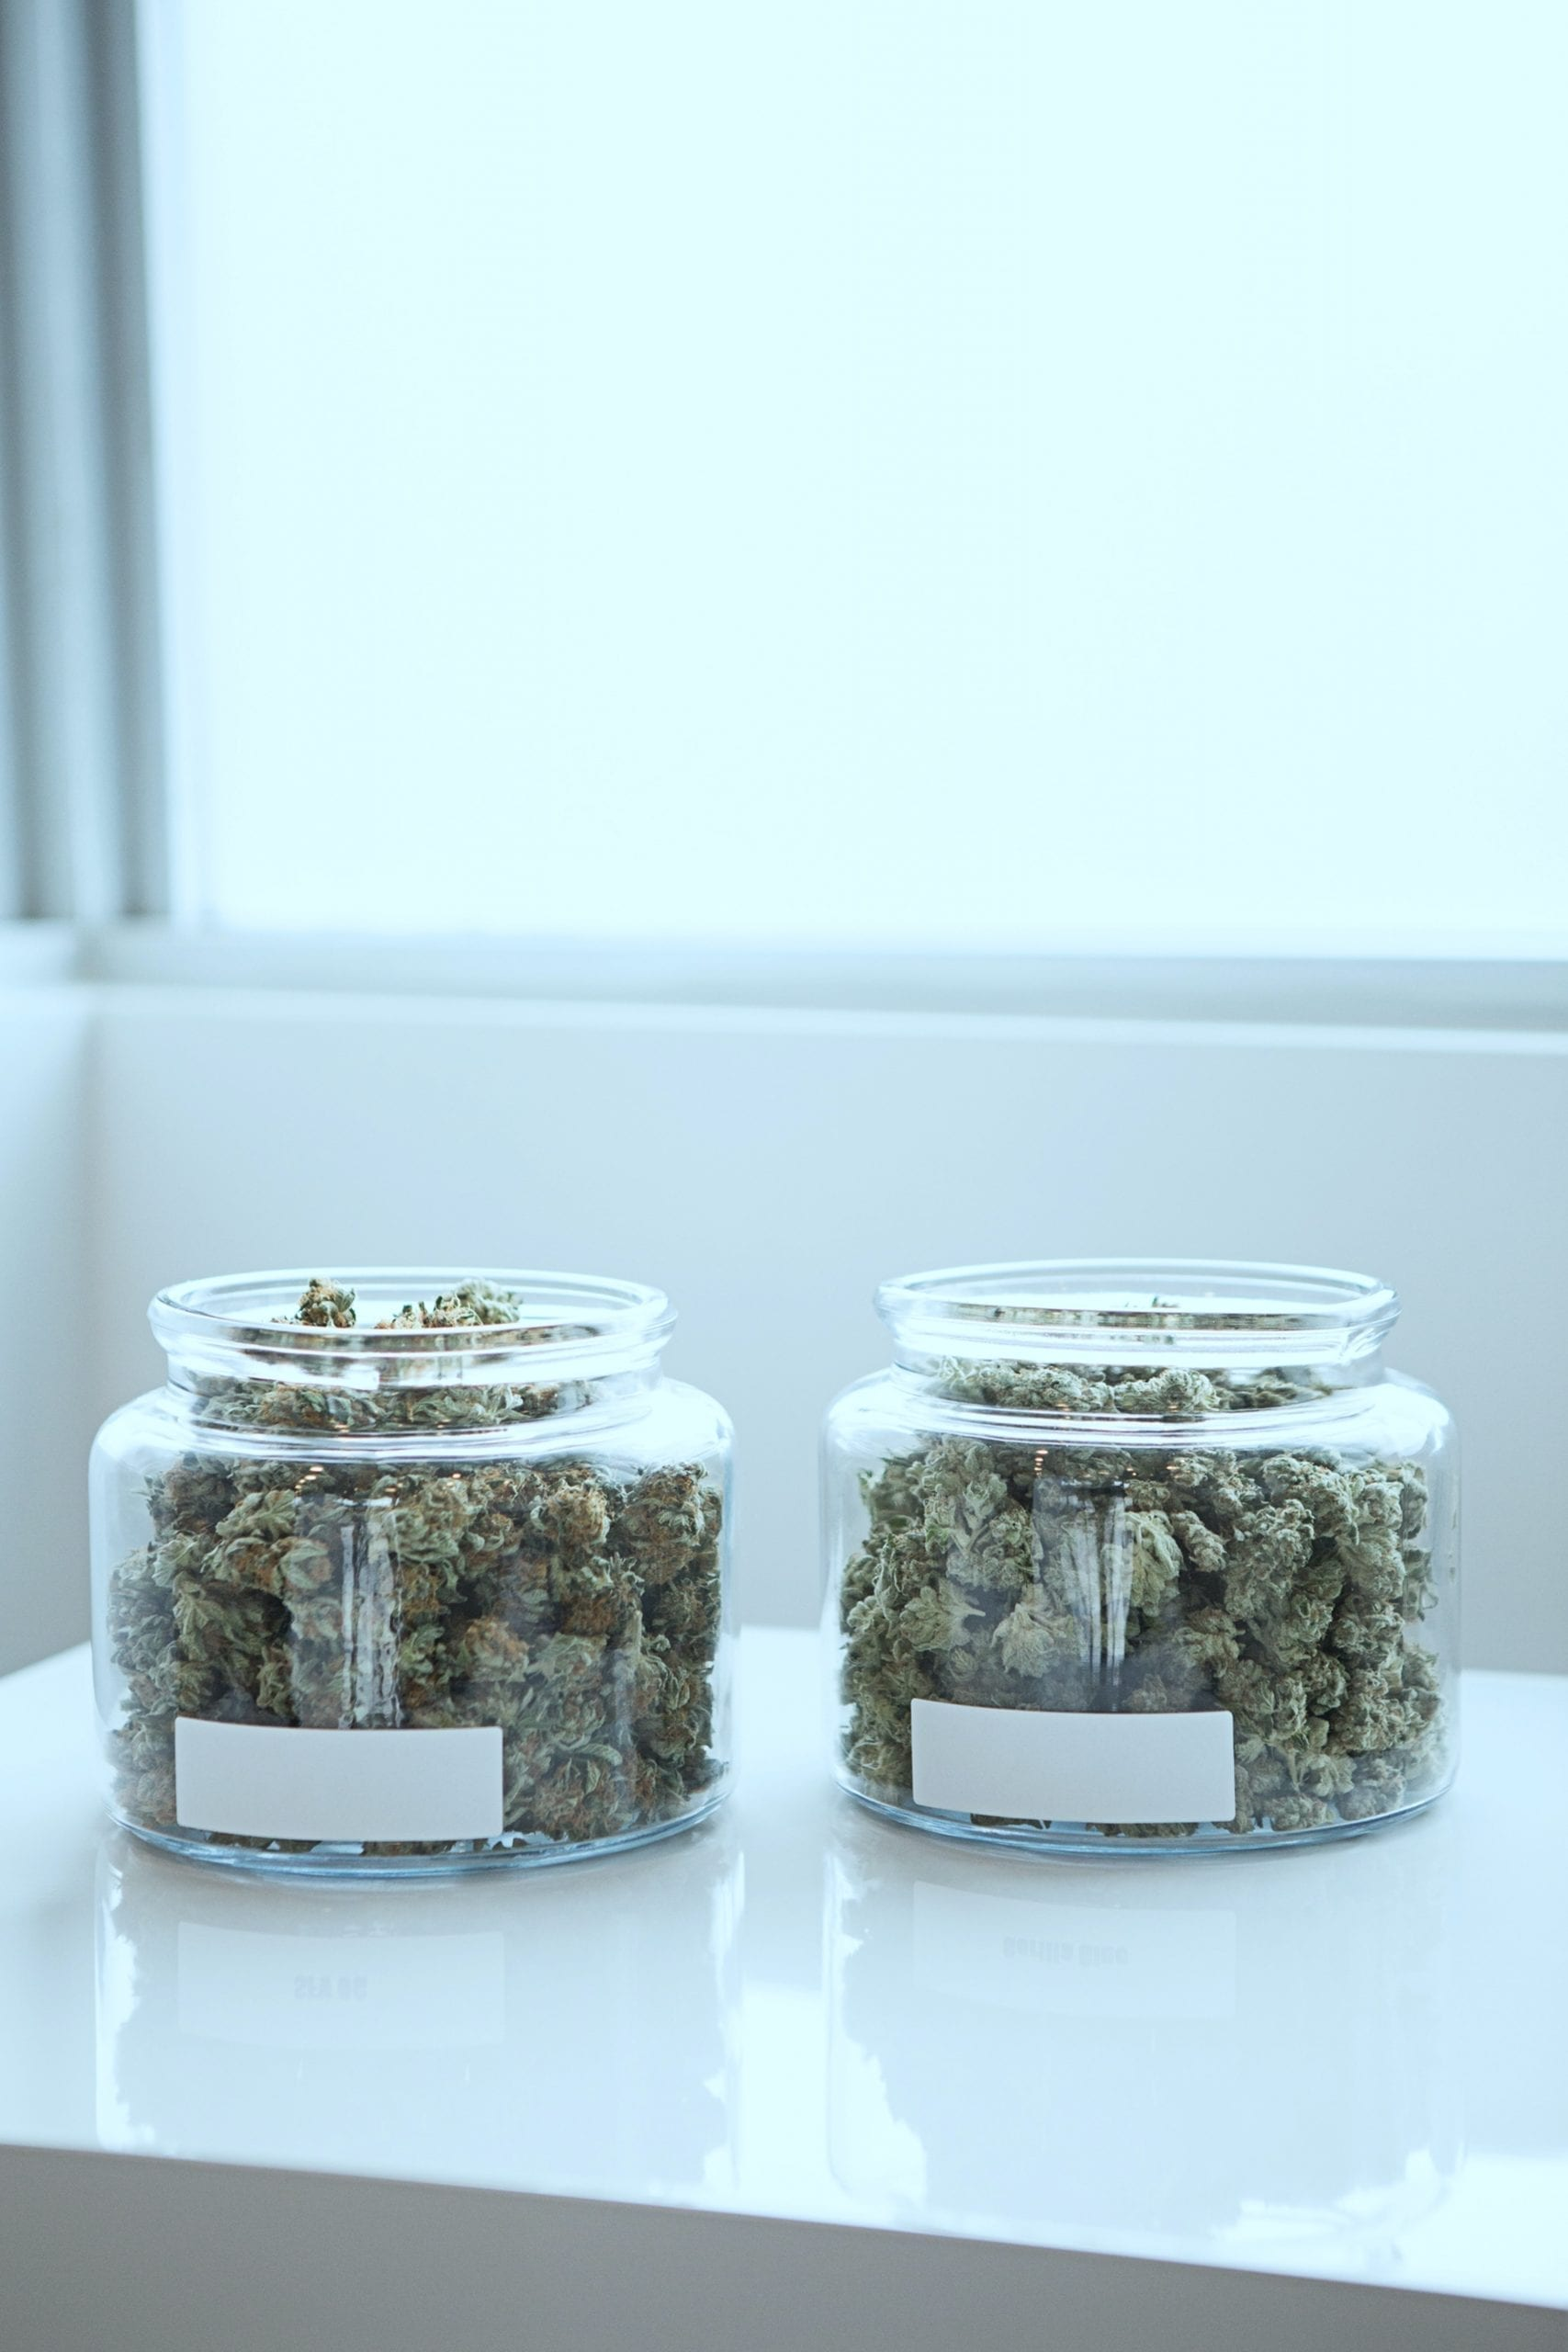 buds harvest jars Add Weed